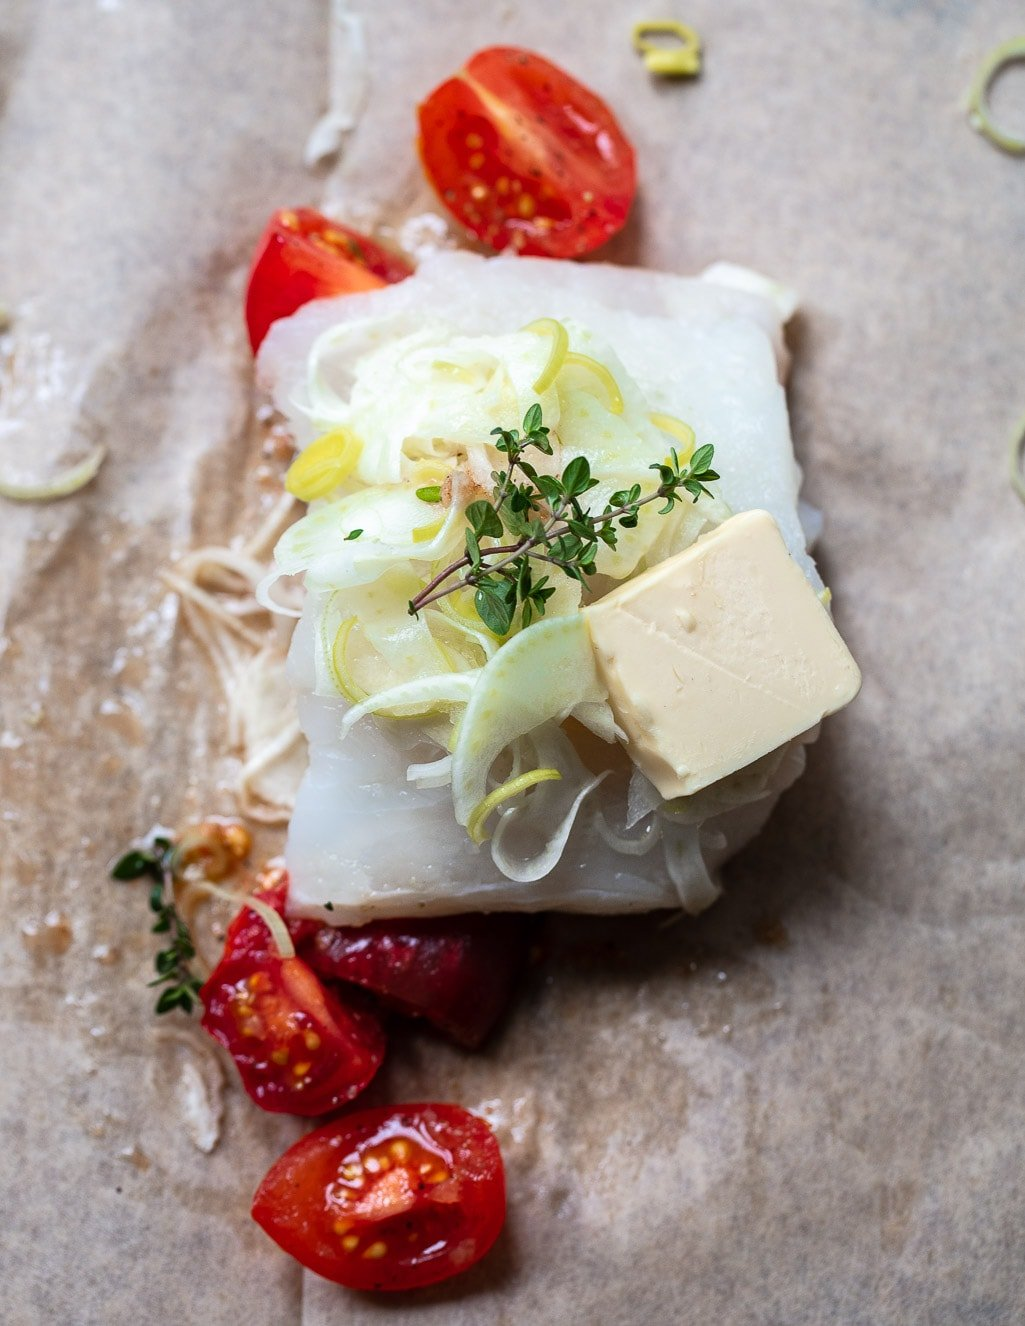 The least fussy and tastiest way to cook fresh fish - Parchment Roasted Cod with Fennel, Tomatoes and Thyme